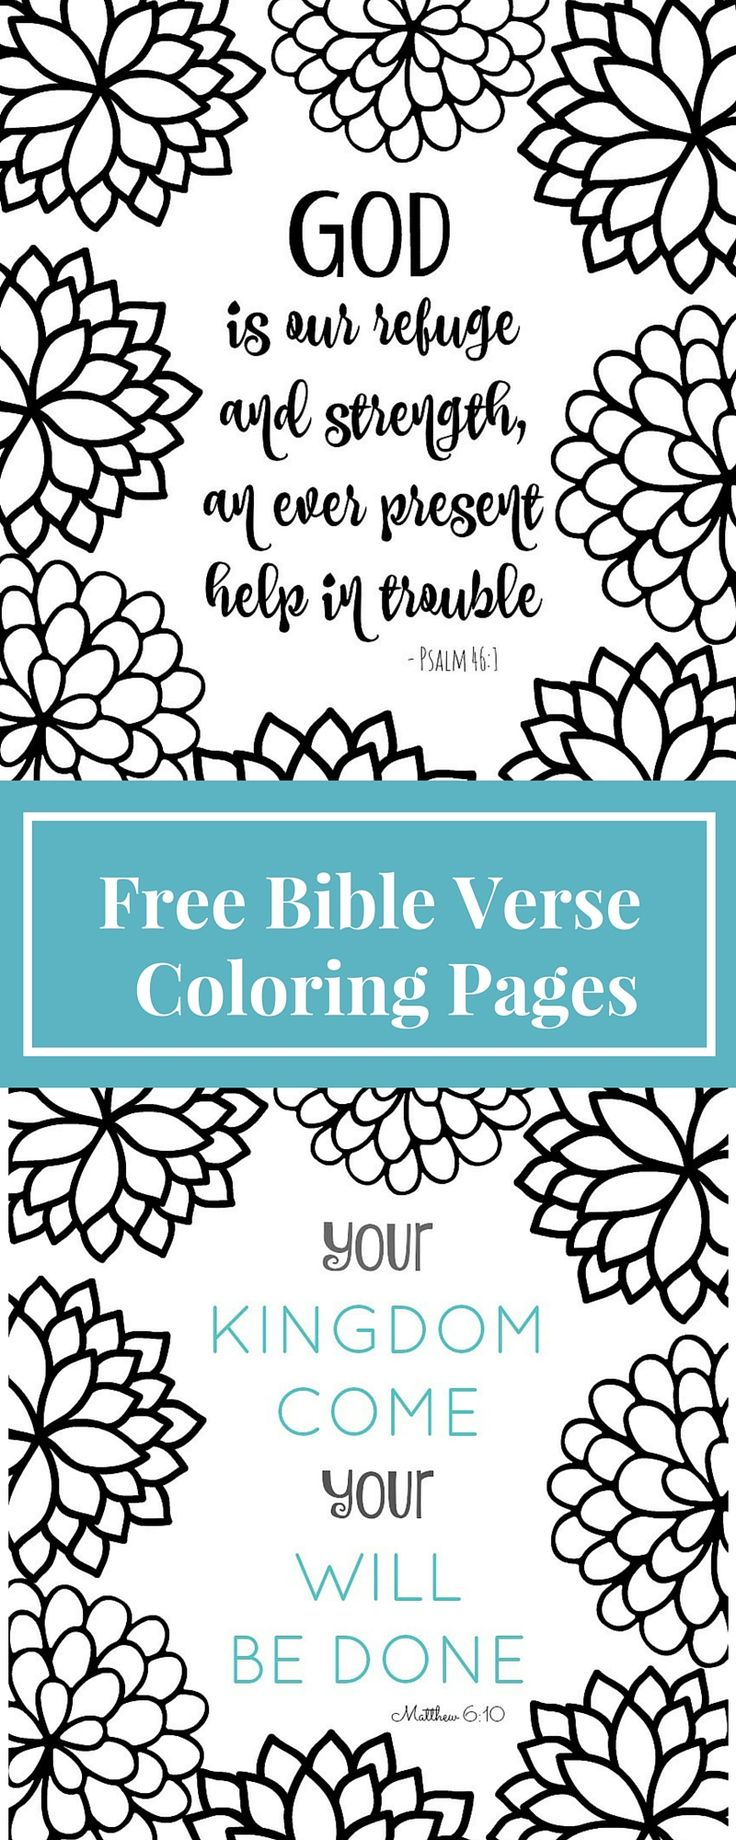 Coloring Pages Quail From Heaven - Coloring pages are for grown ups now these bible verse coloring page printables are fun